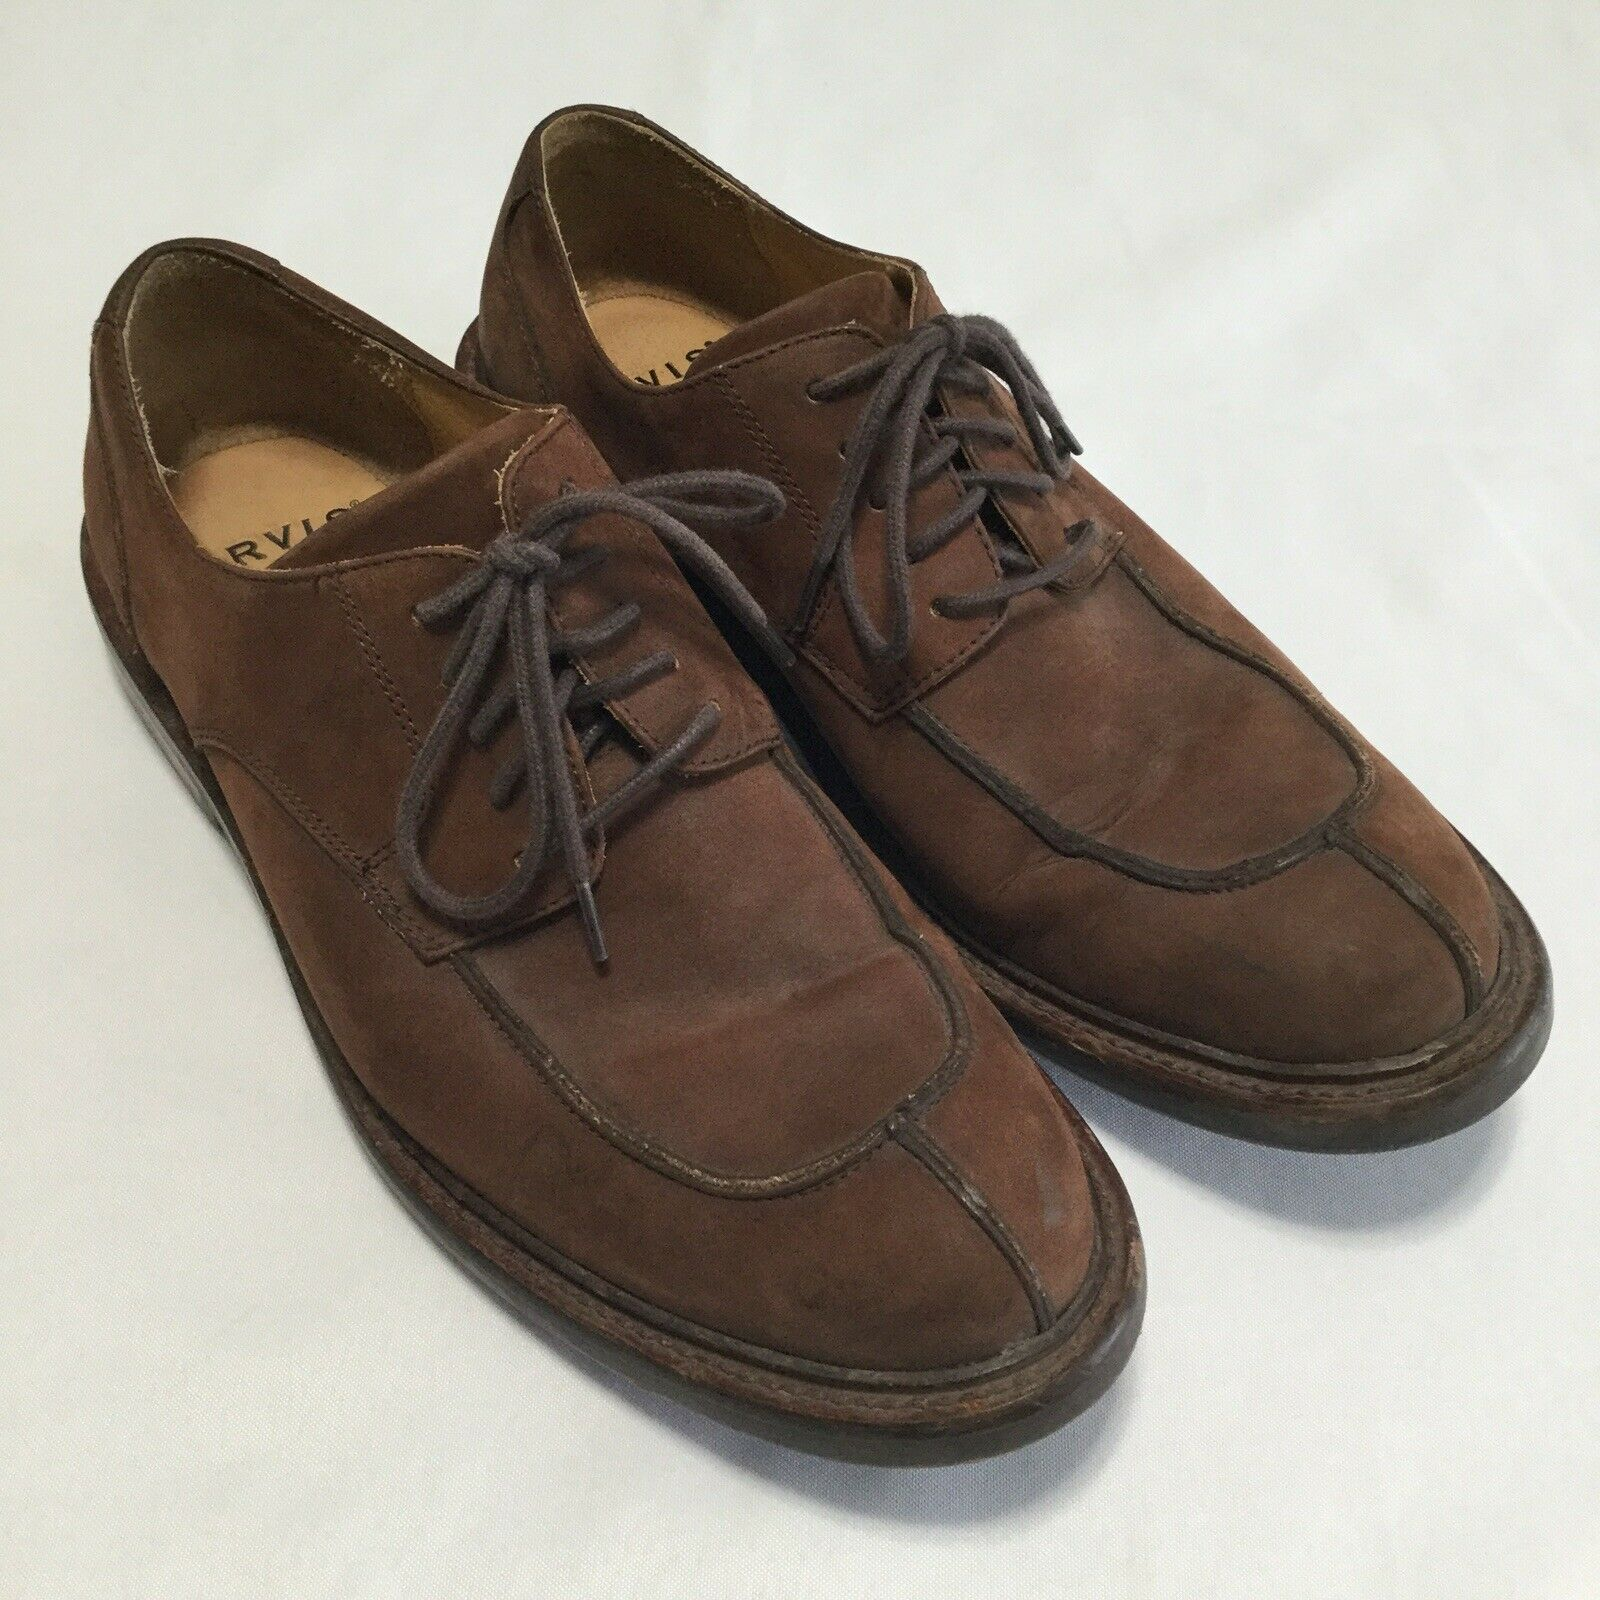 Orvis Men's Lace Up Brown Leather Oxfords shoes Dress Brown Sz 11M OV8055